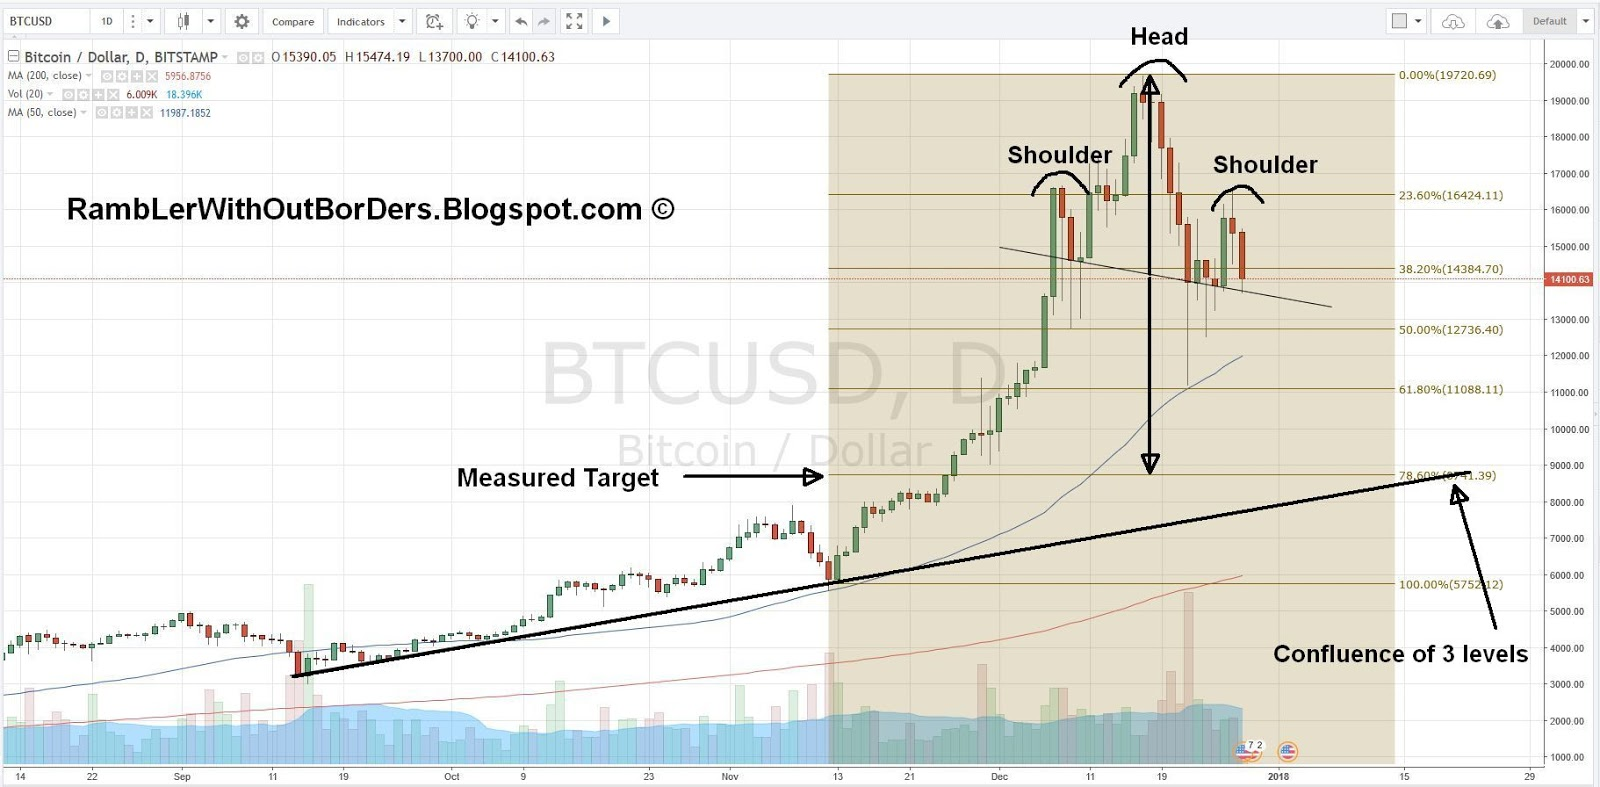 Bicoin chart showing Fib retracement levels and head and shoulder pattern